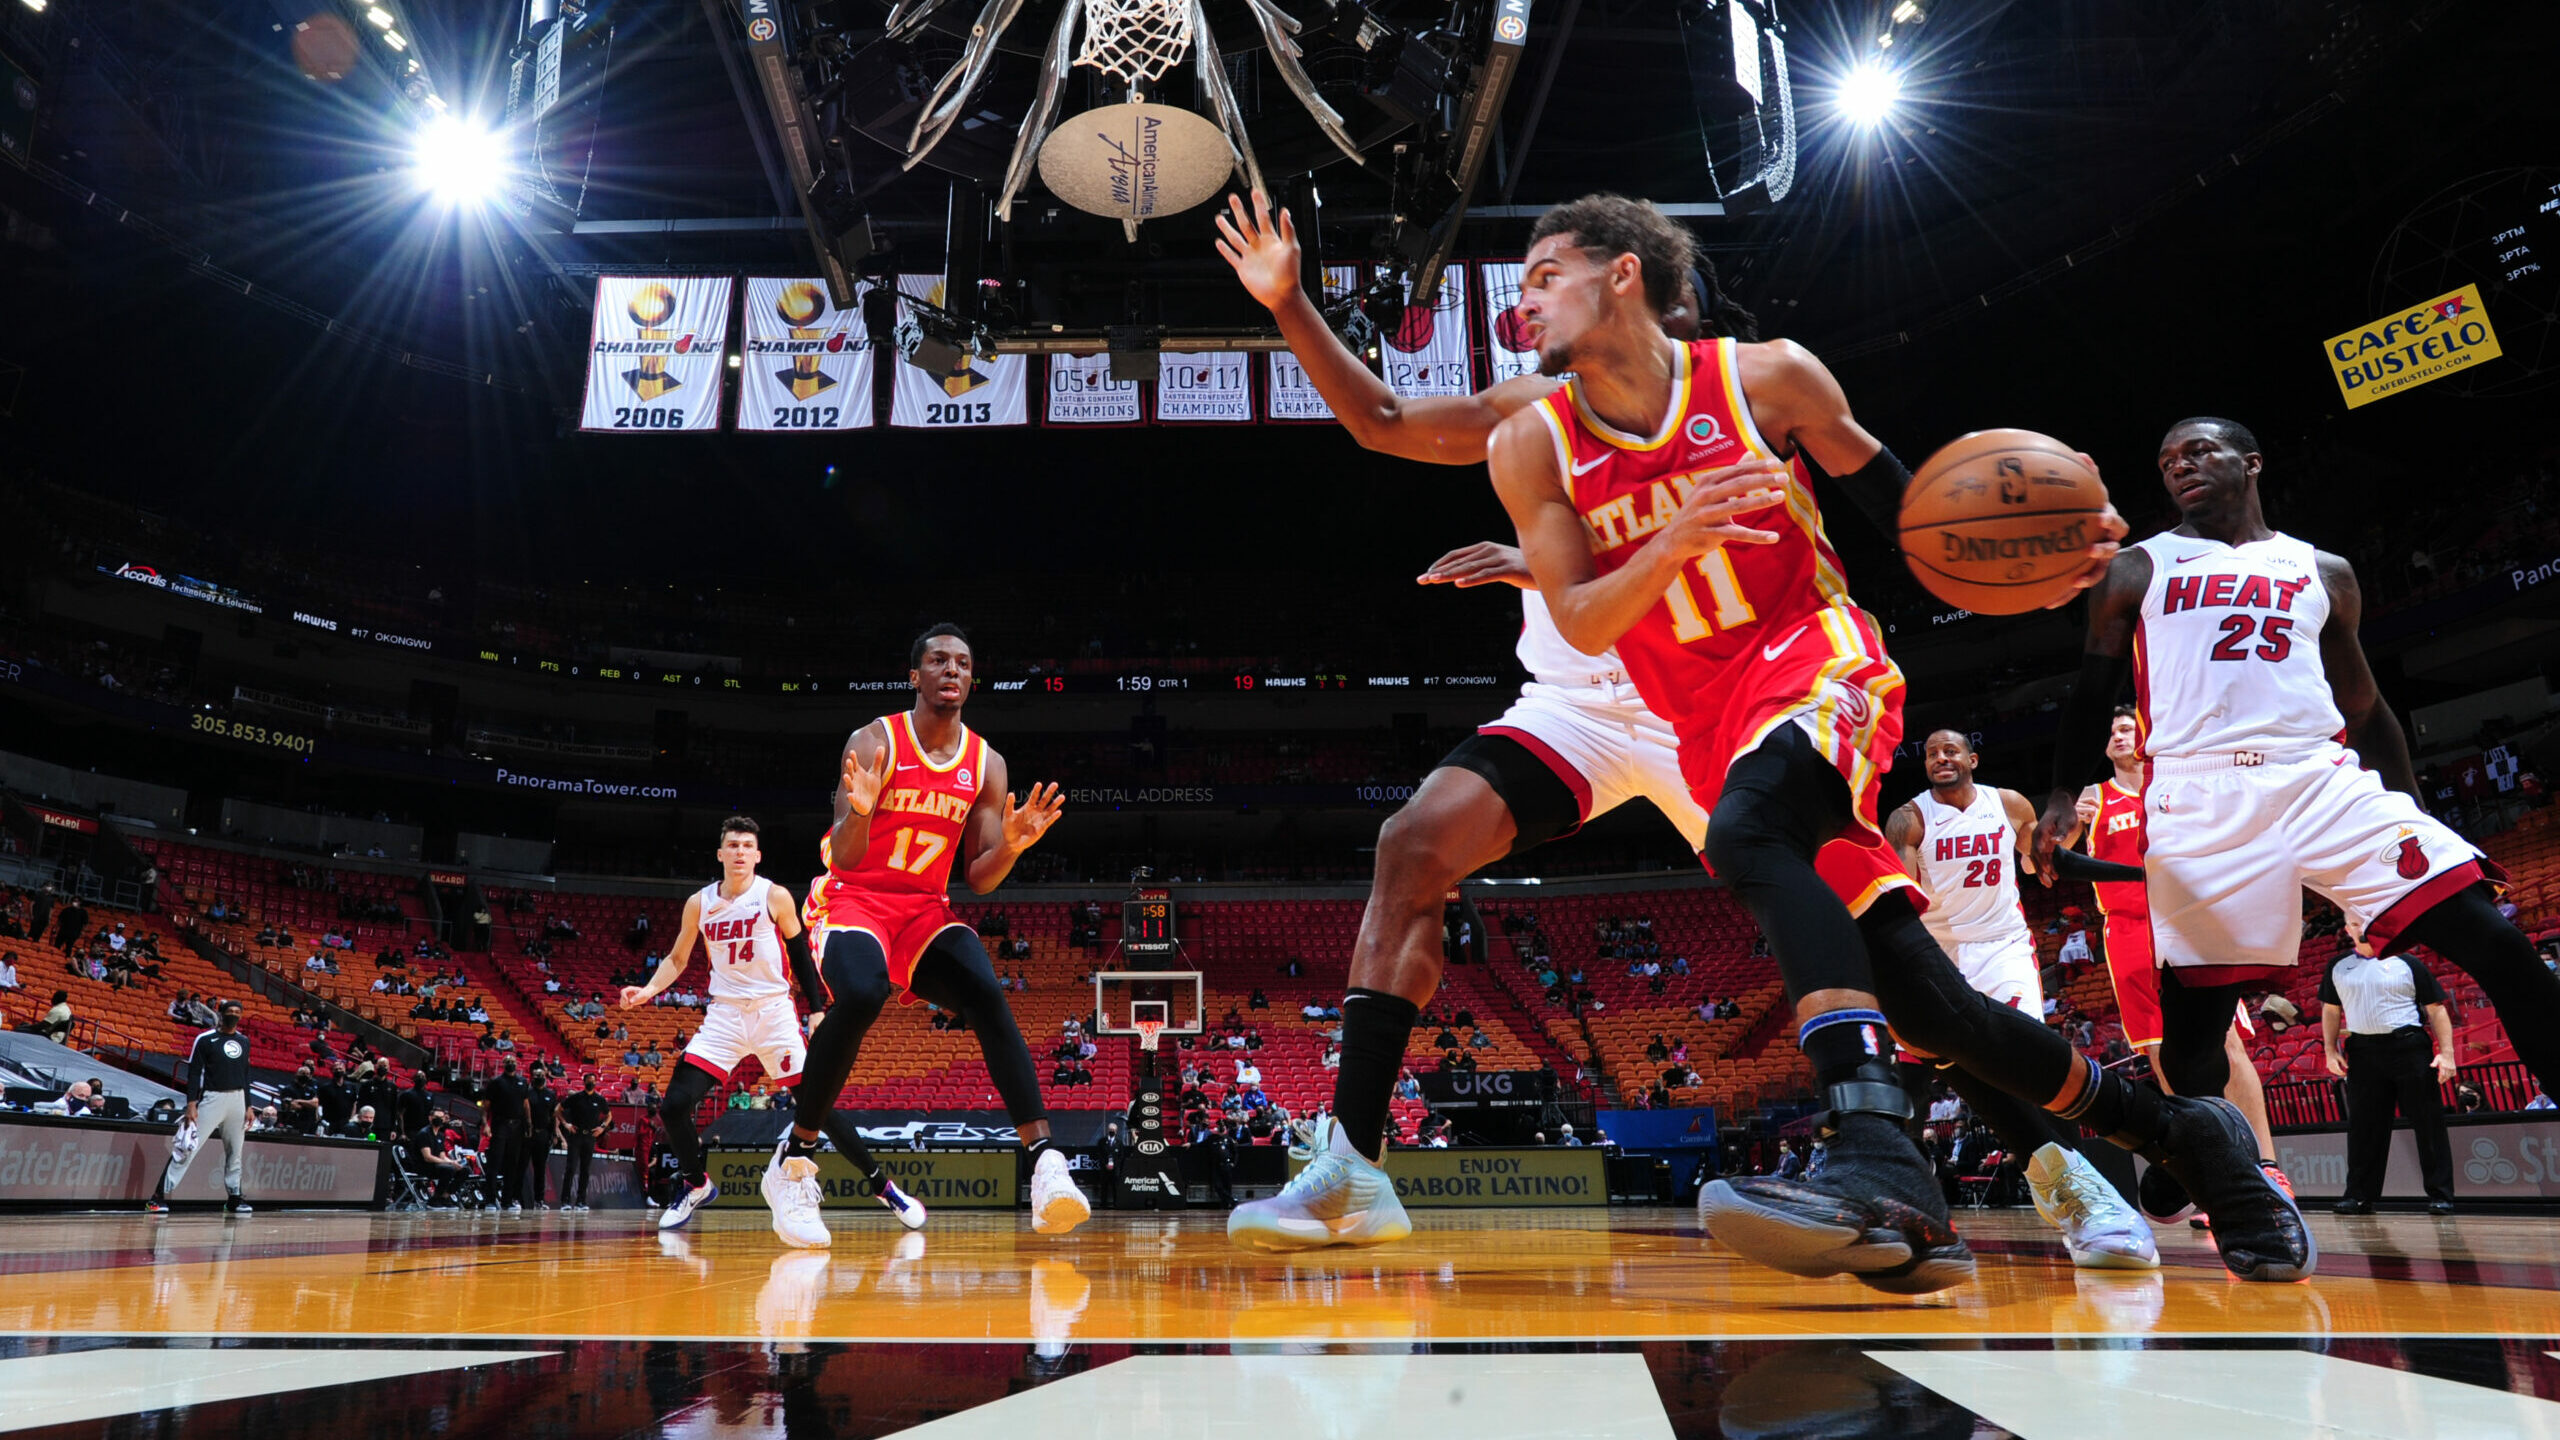 Hawks stop streaking Heat in 1st game under McMillan